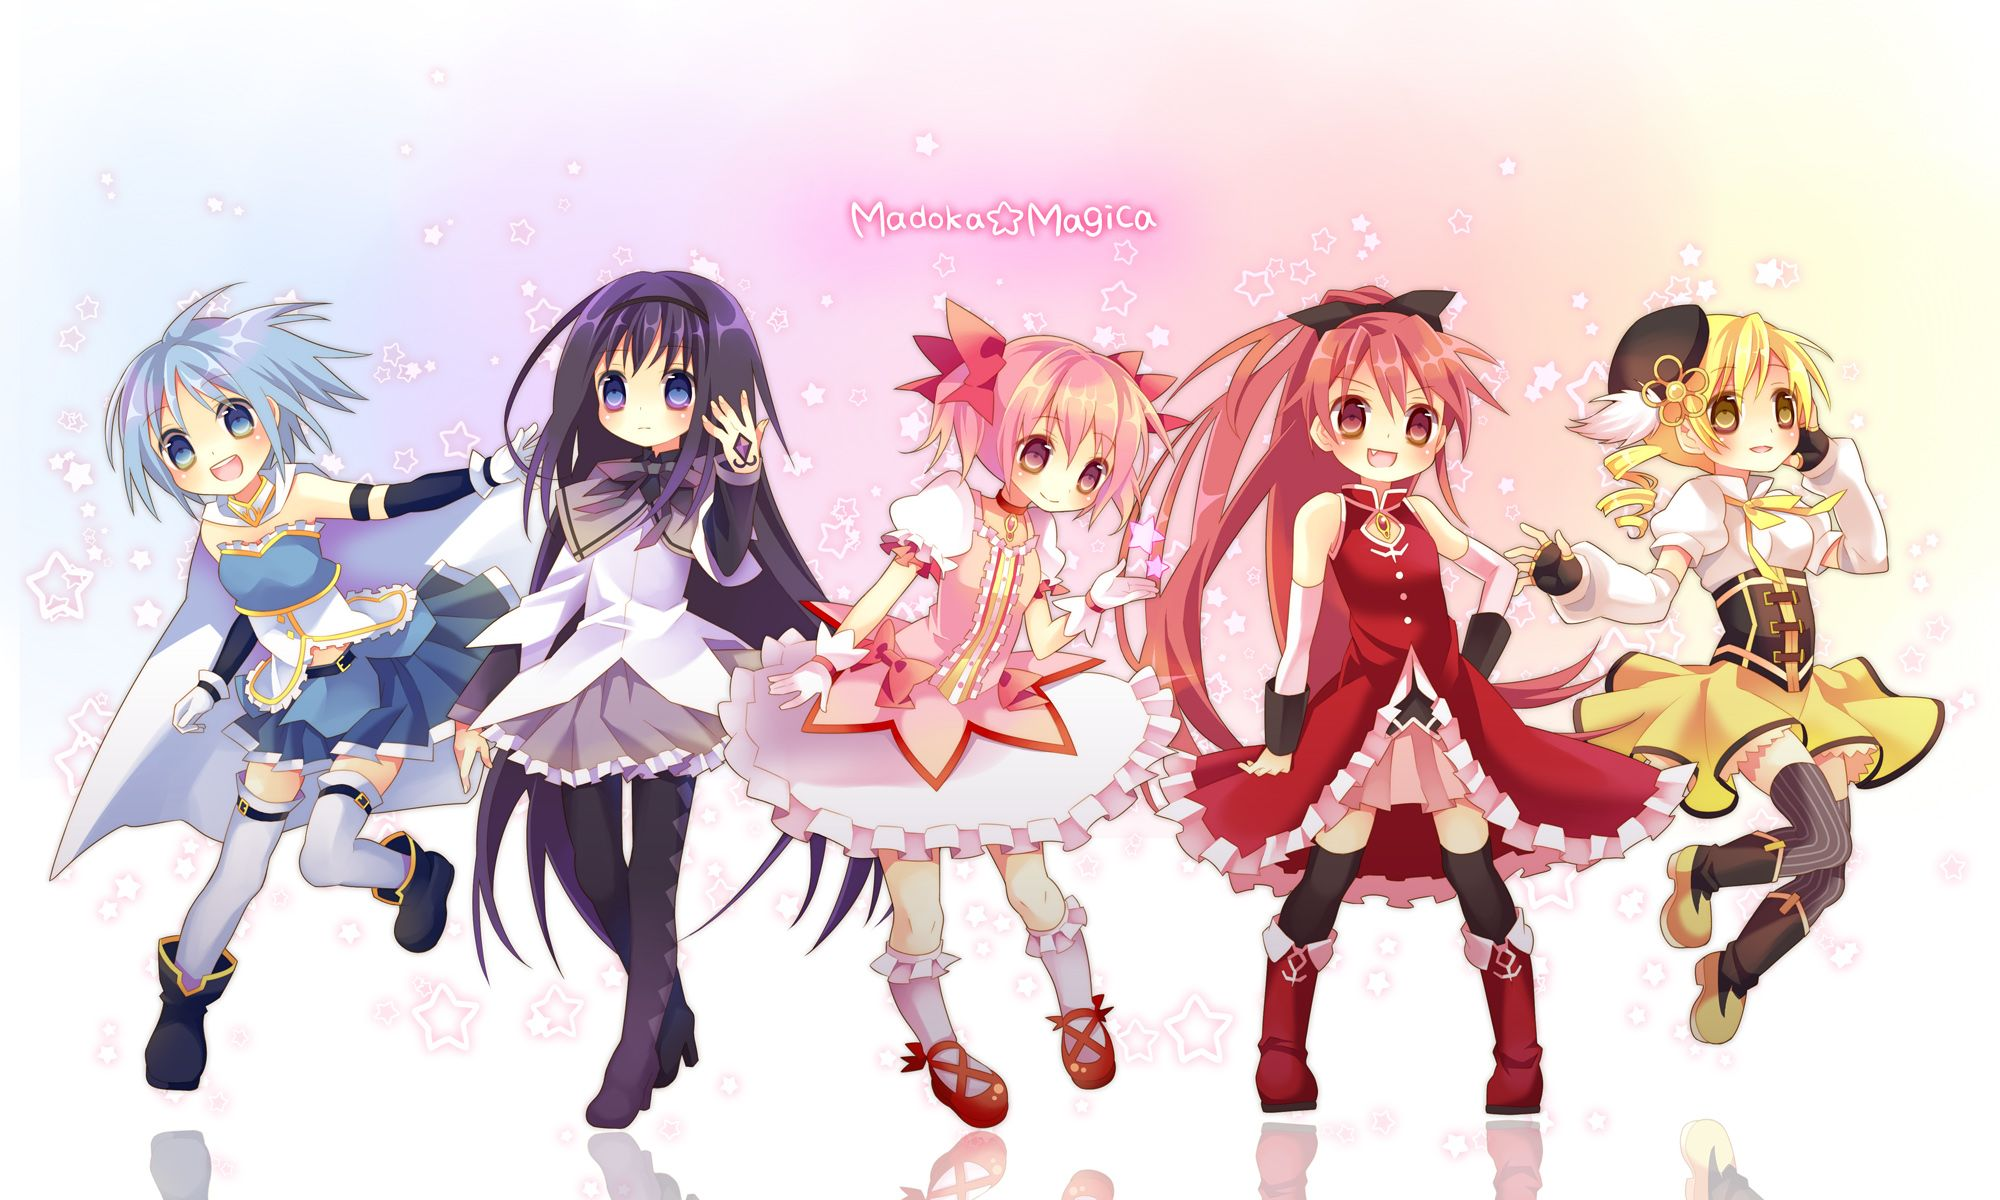 anime group of friends | ... friends forever, anime, chibi, colors, cute, friends, girls, group